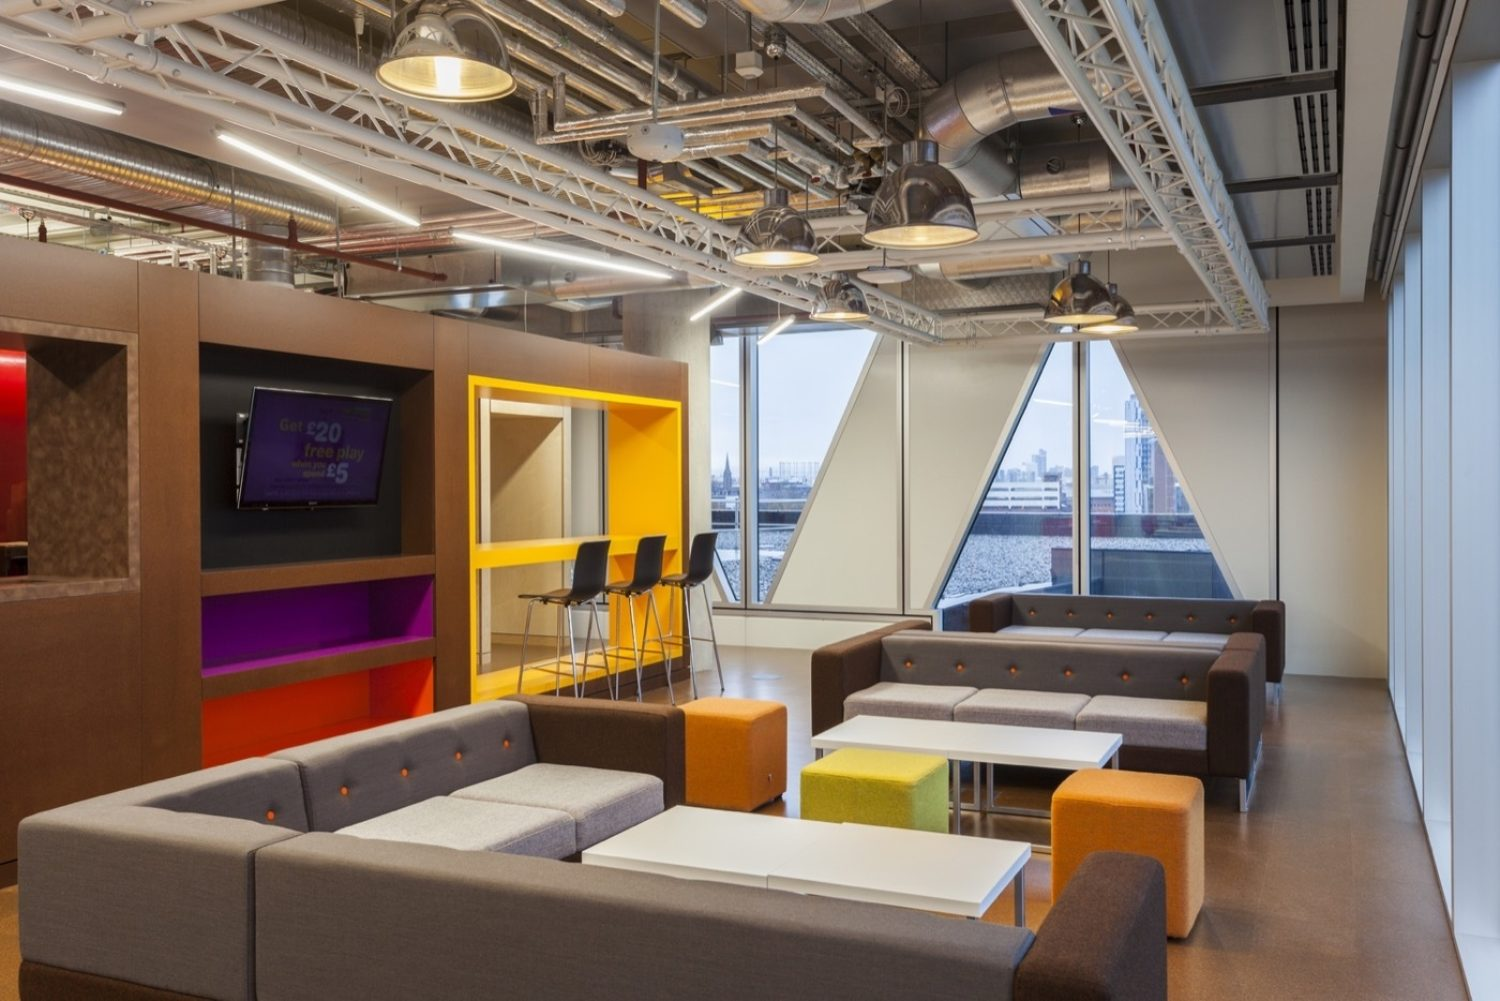 ITV breakout area fit out